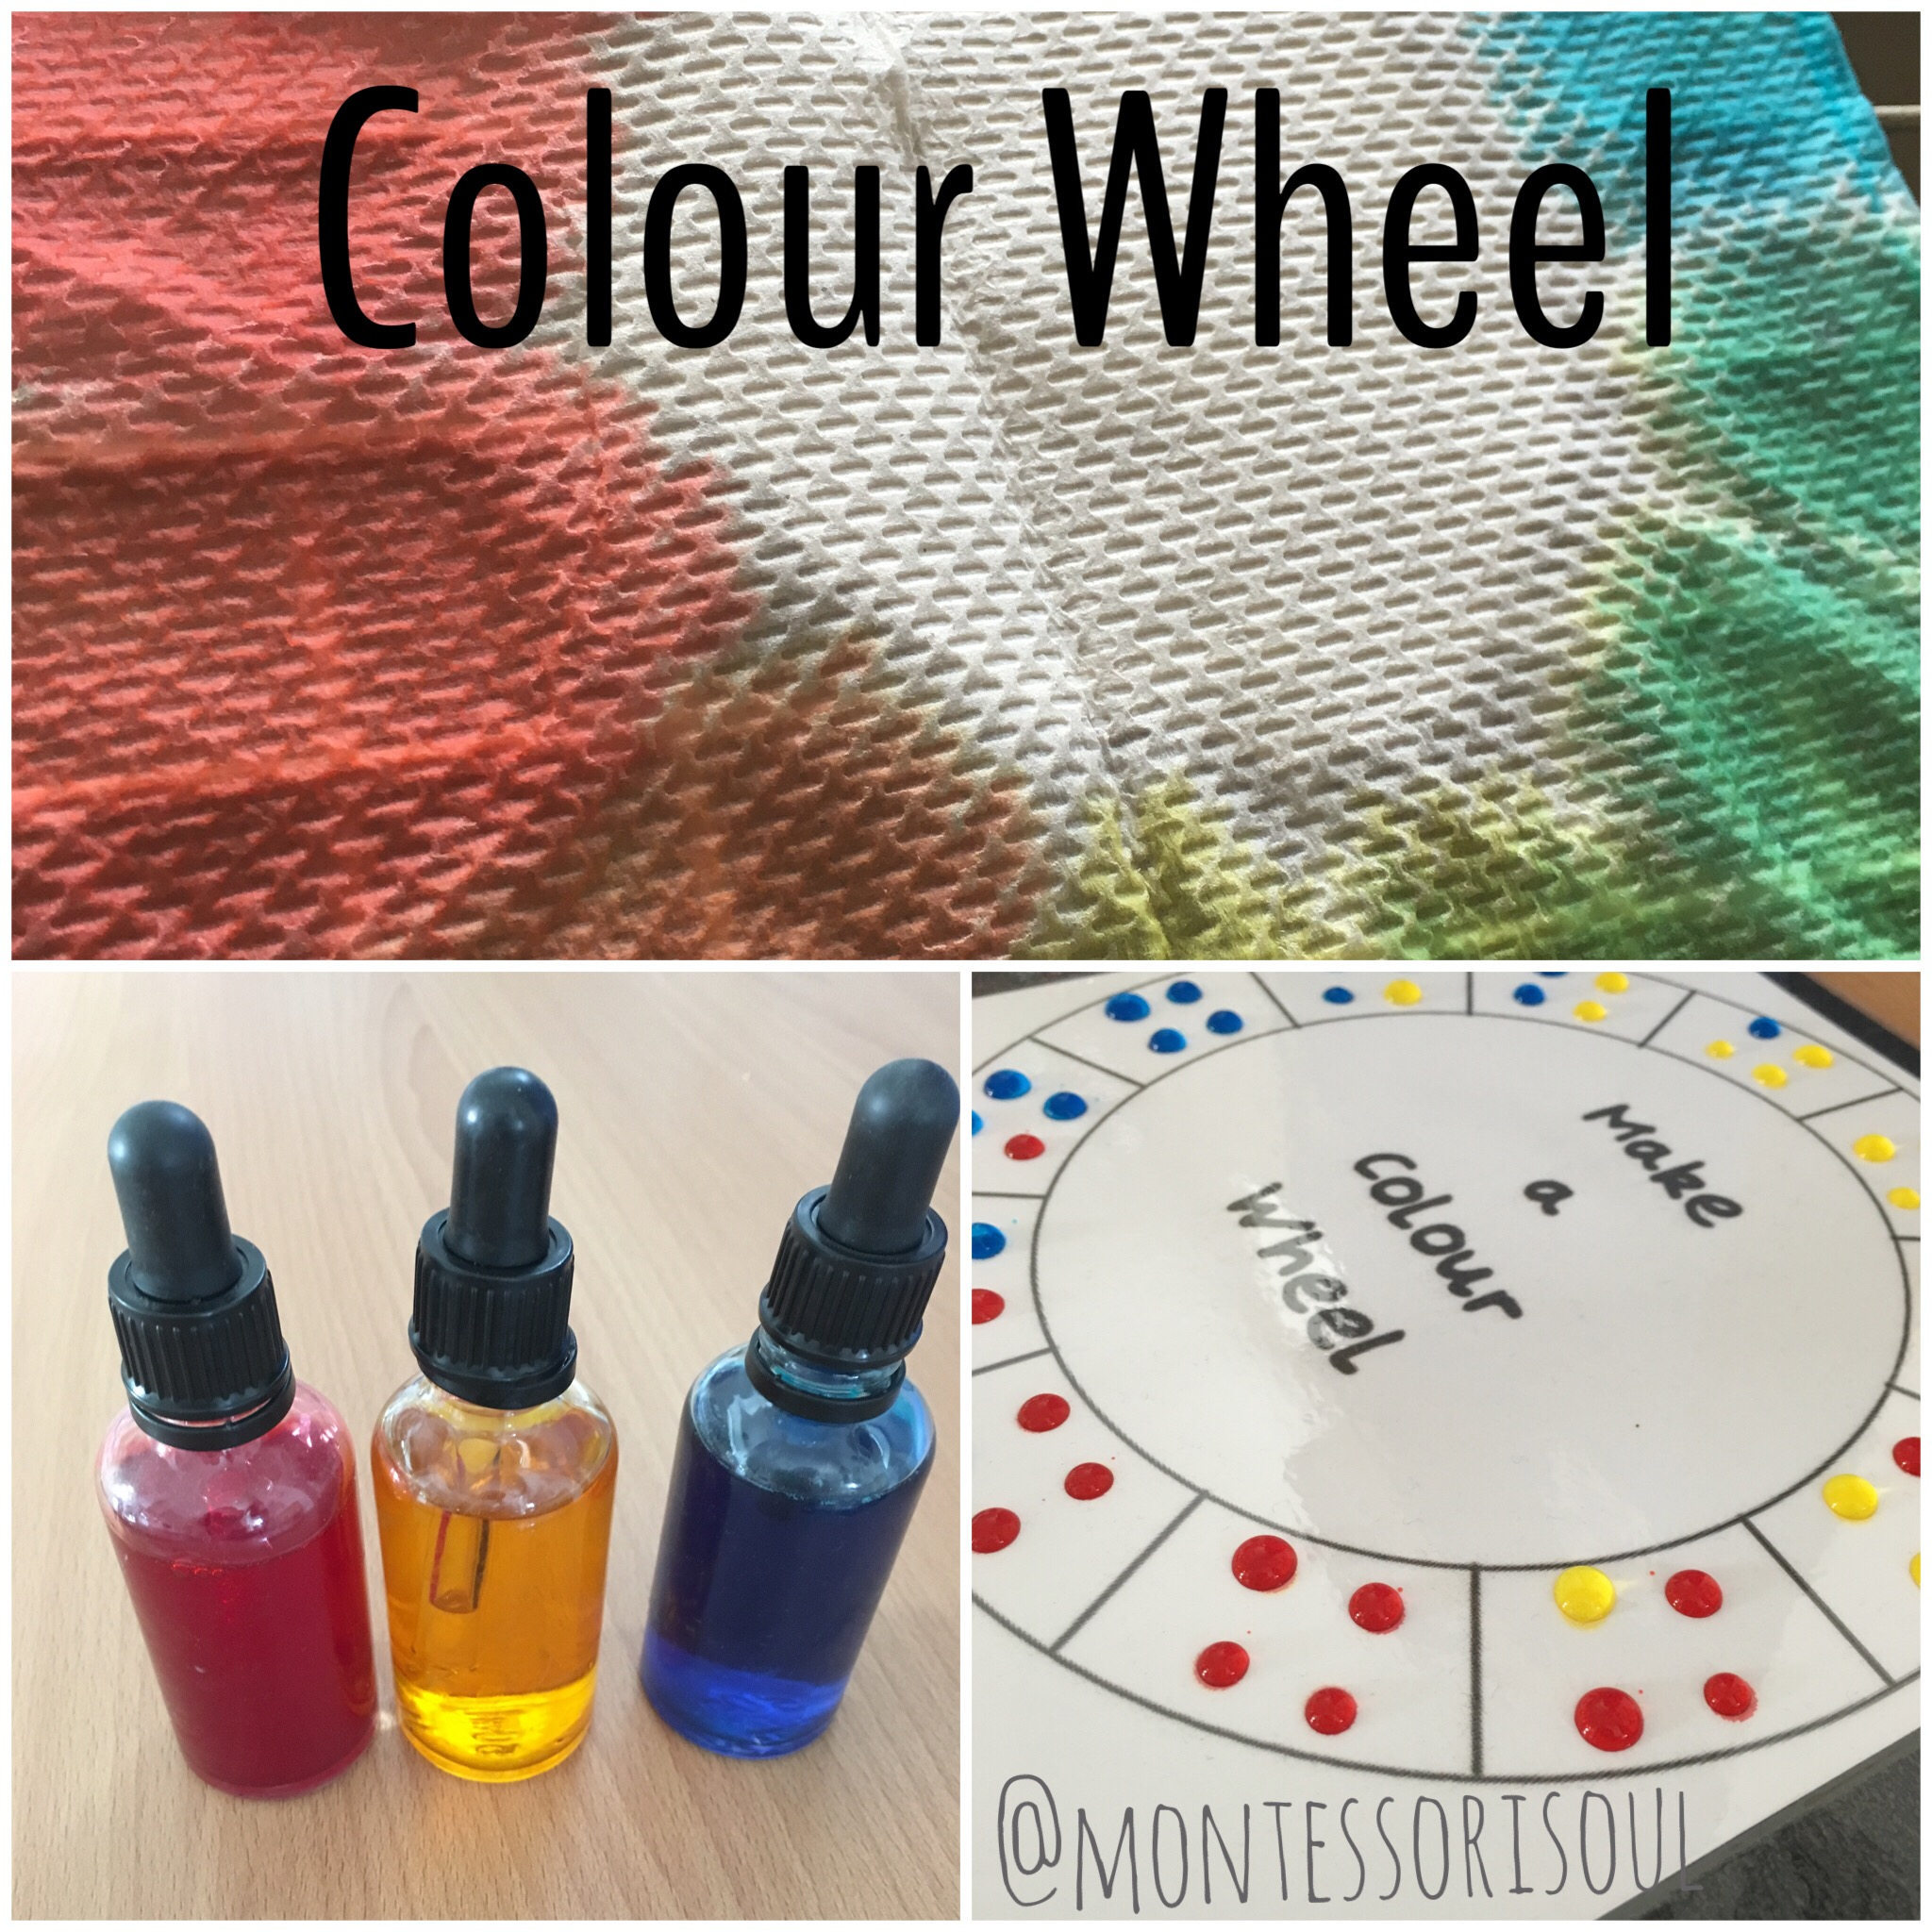 Water colour wheel using coloured water